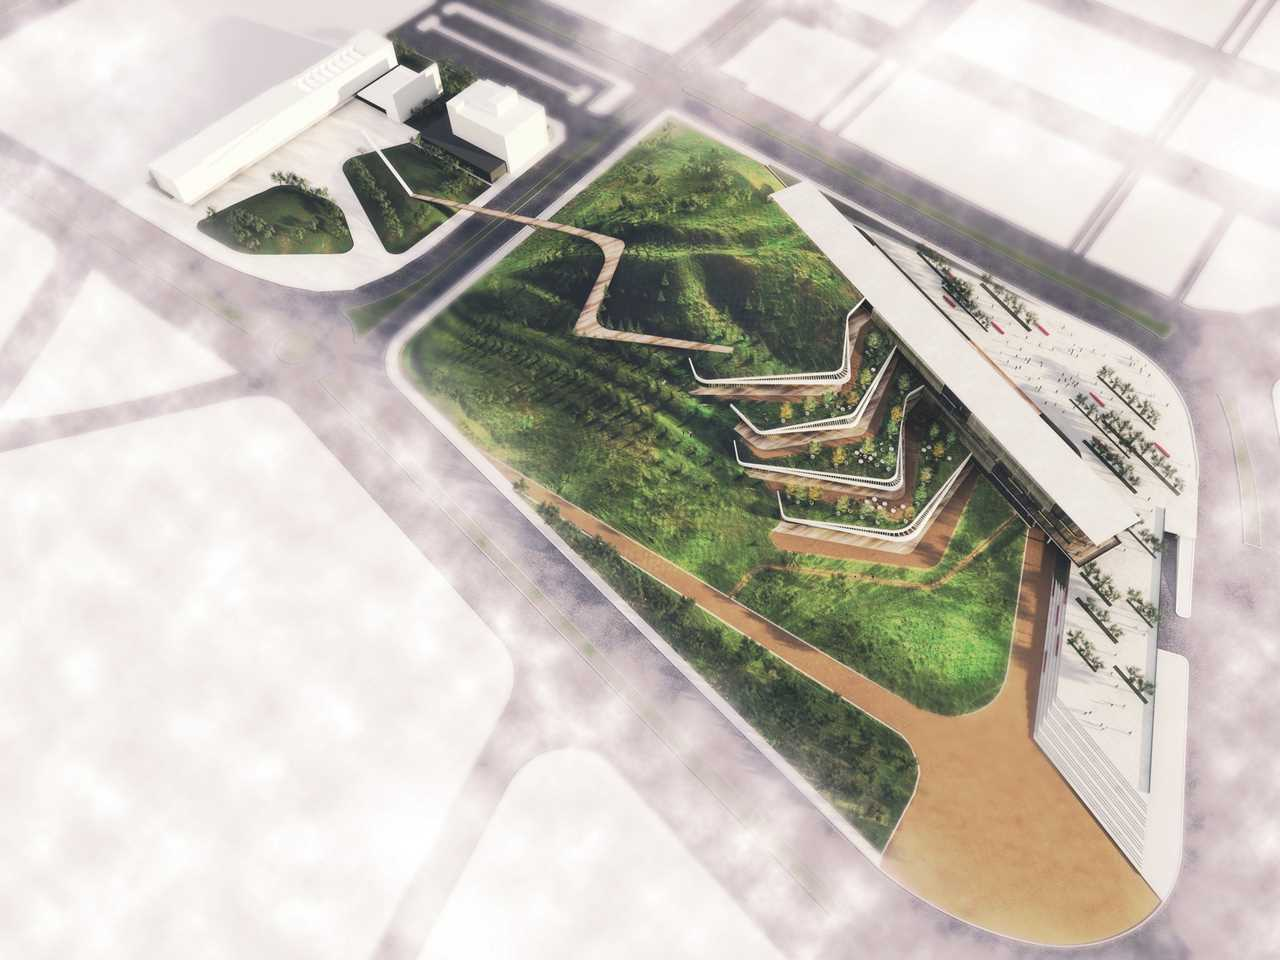 Holcim Awards Gold – Eco-Techno Park: Green building showcase and enterprise hub, Ankara, Turkey